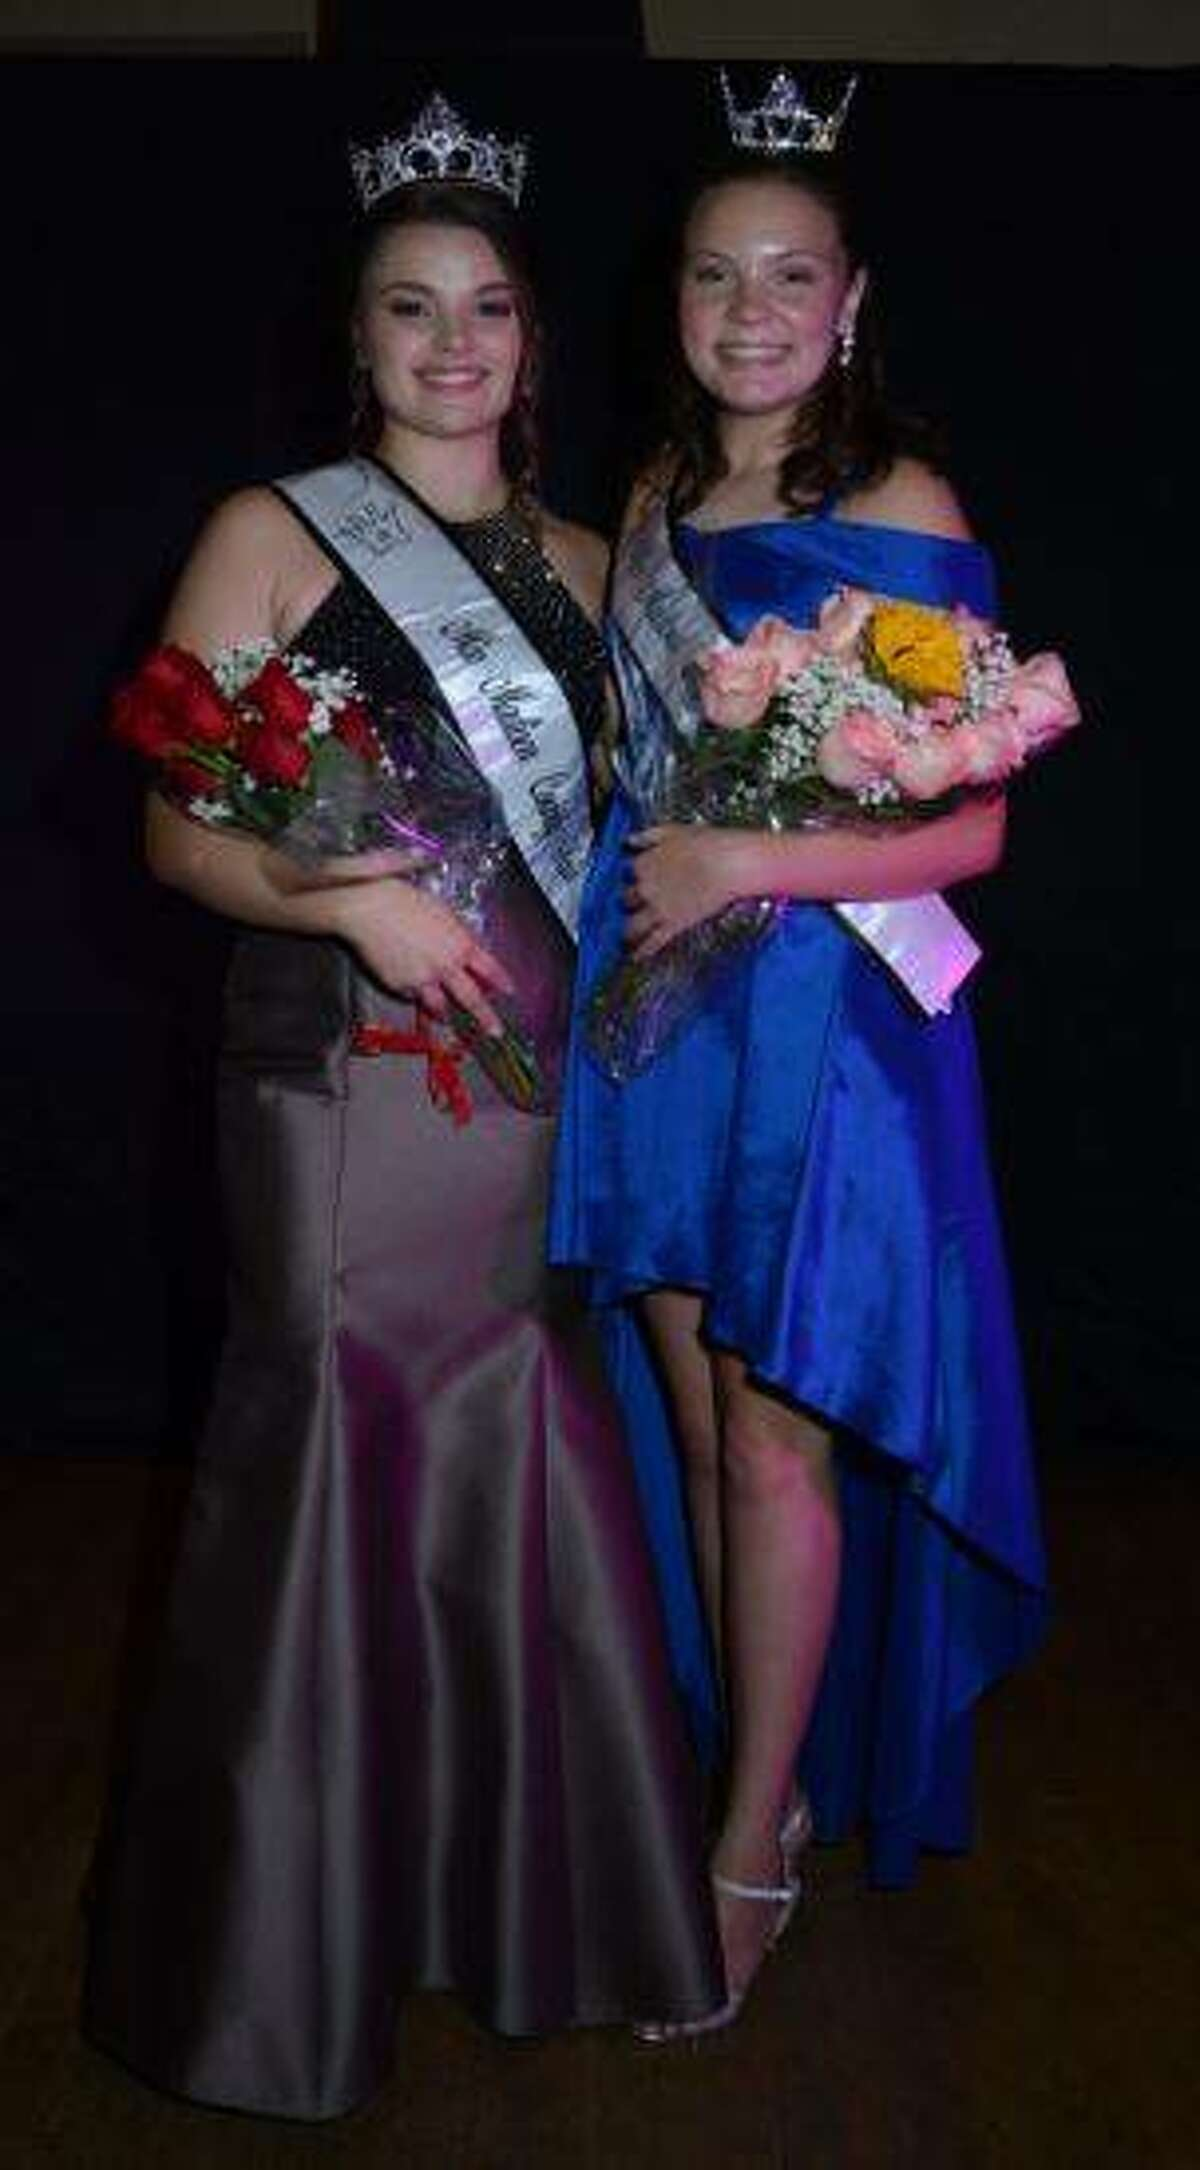 The 2019 Madison County Fair royalty includes Queen Elizabeth Moon of Alton and Junior Miss Courtney Picklesimer of Moro. The 2021 Madison County Fair Queen Pageant is 1:30 p.m. Saturday, July 31 at the Madison County Fair in Highland.